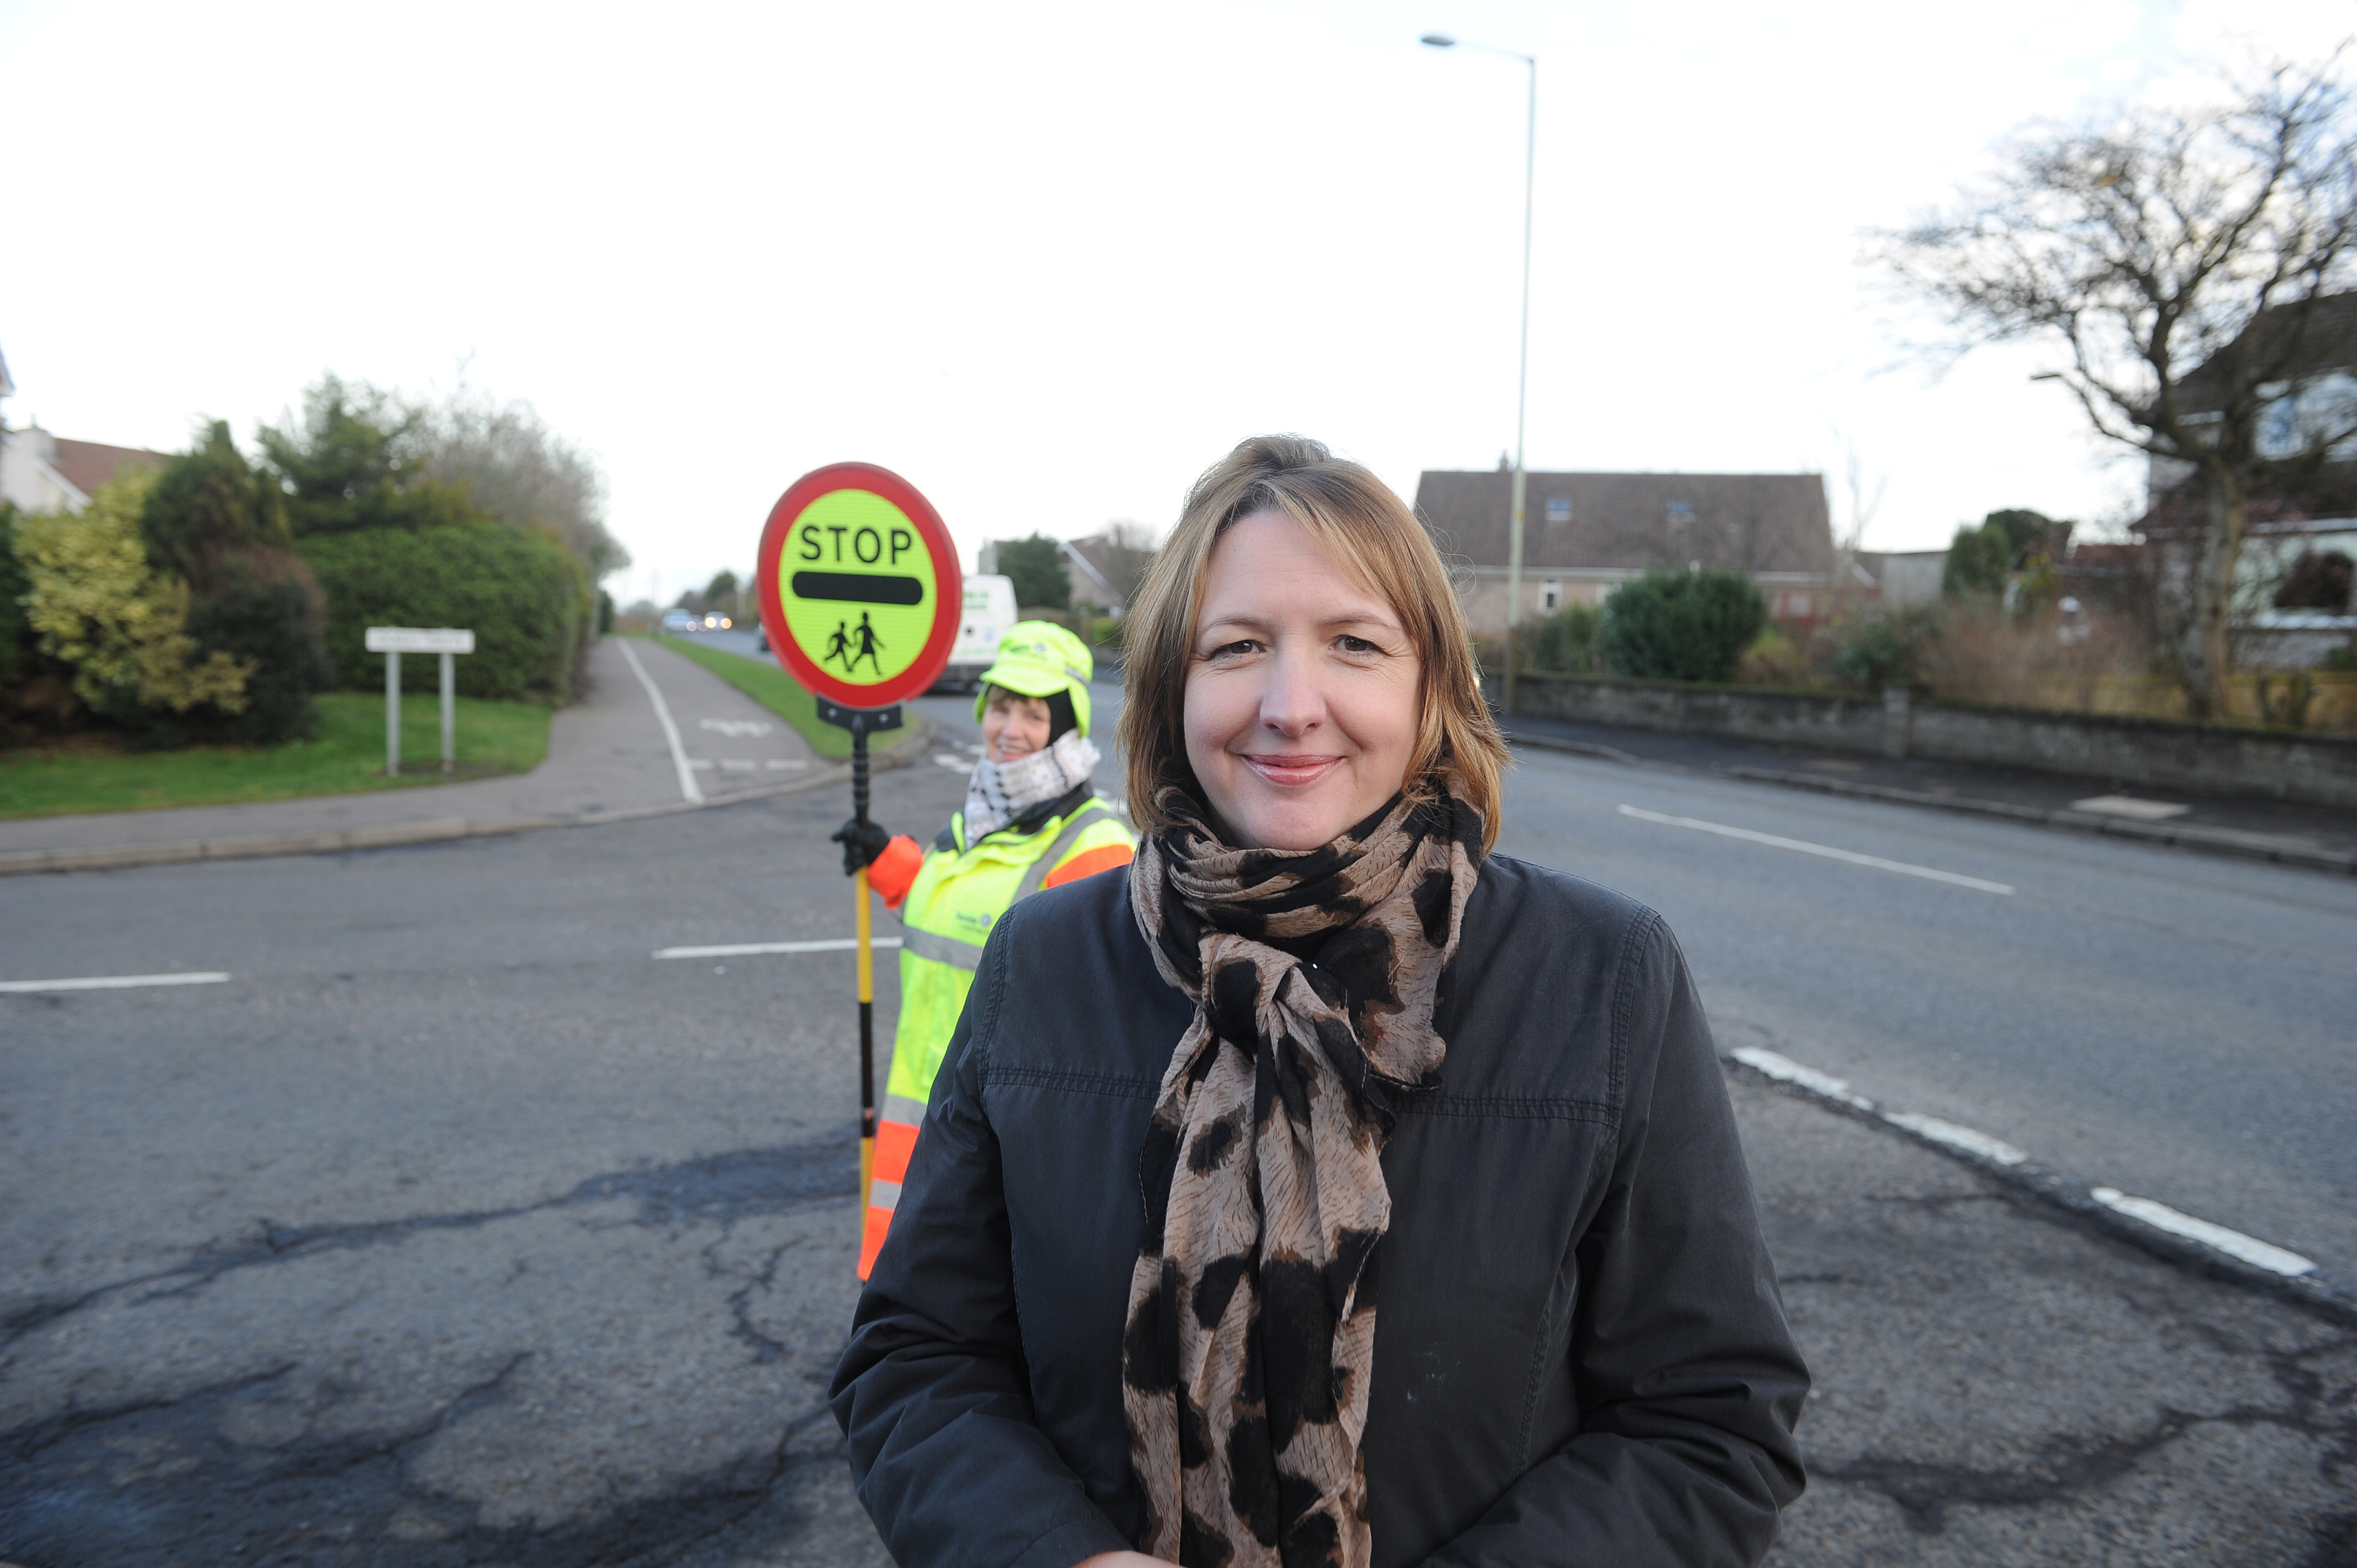 Angela created the petition after Freda was moved from her position outside Forthill Primary School.